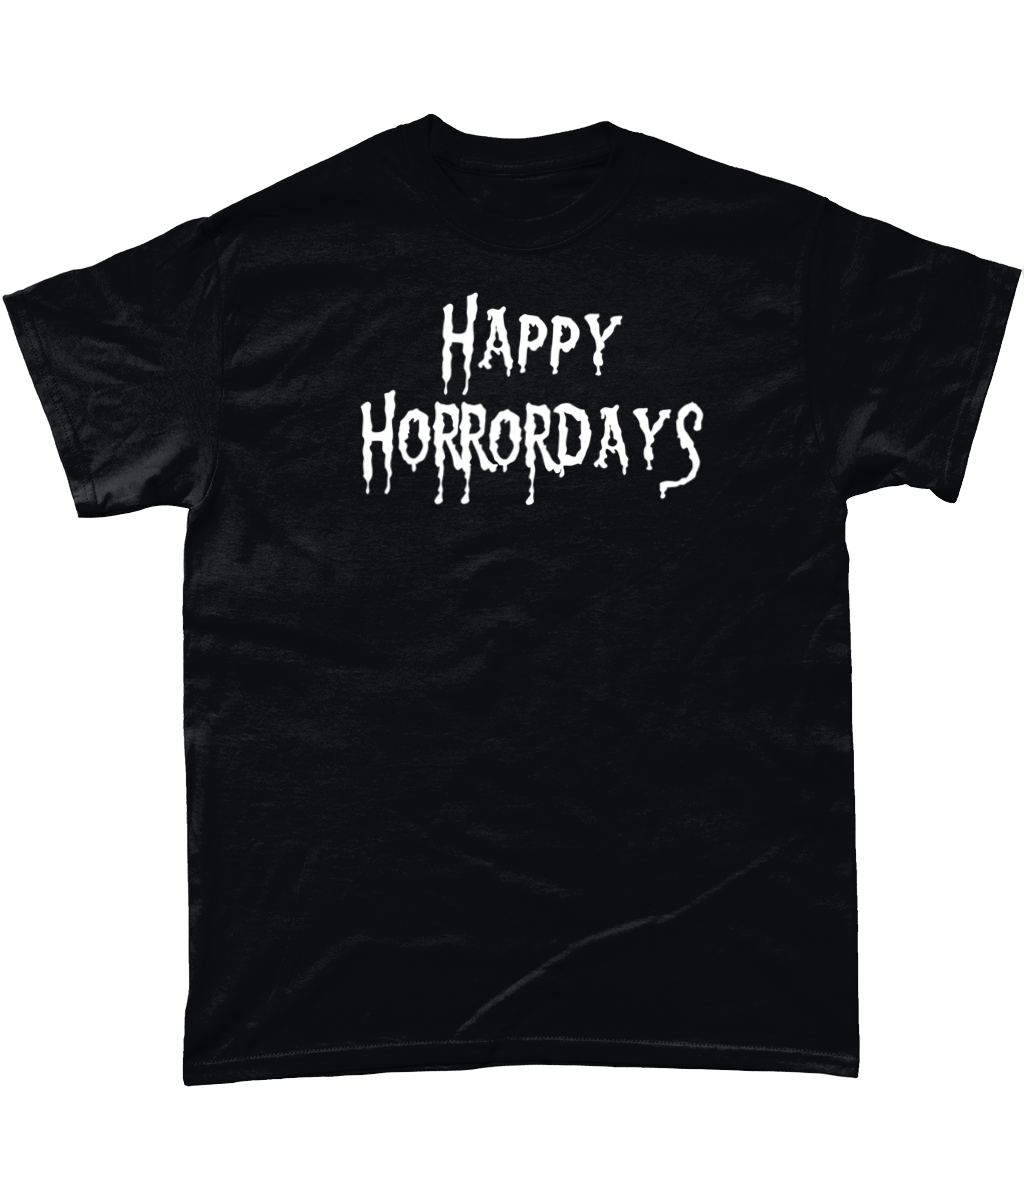 Happy Horrordays T-Shirt